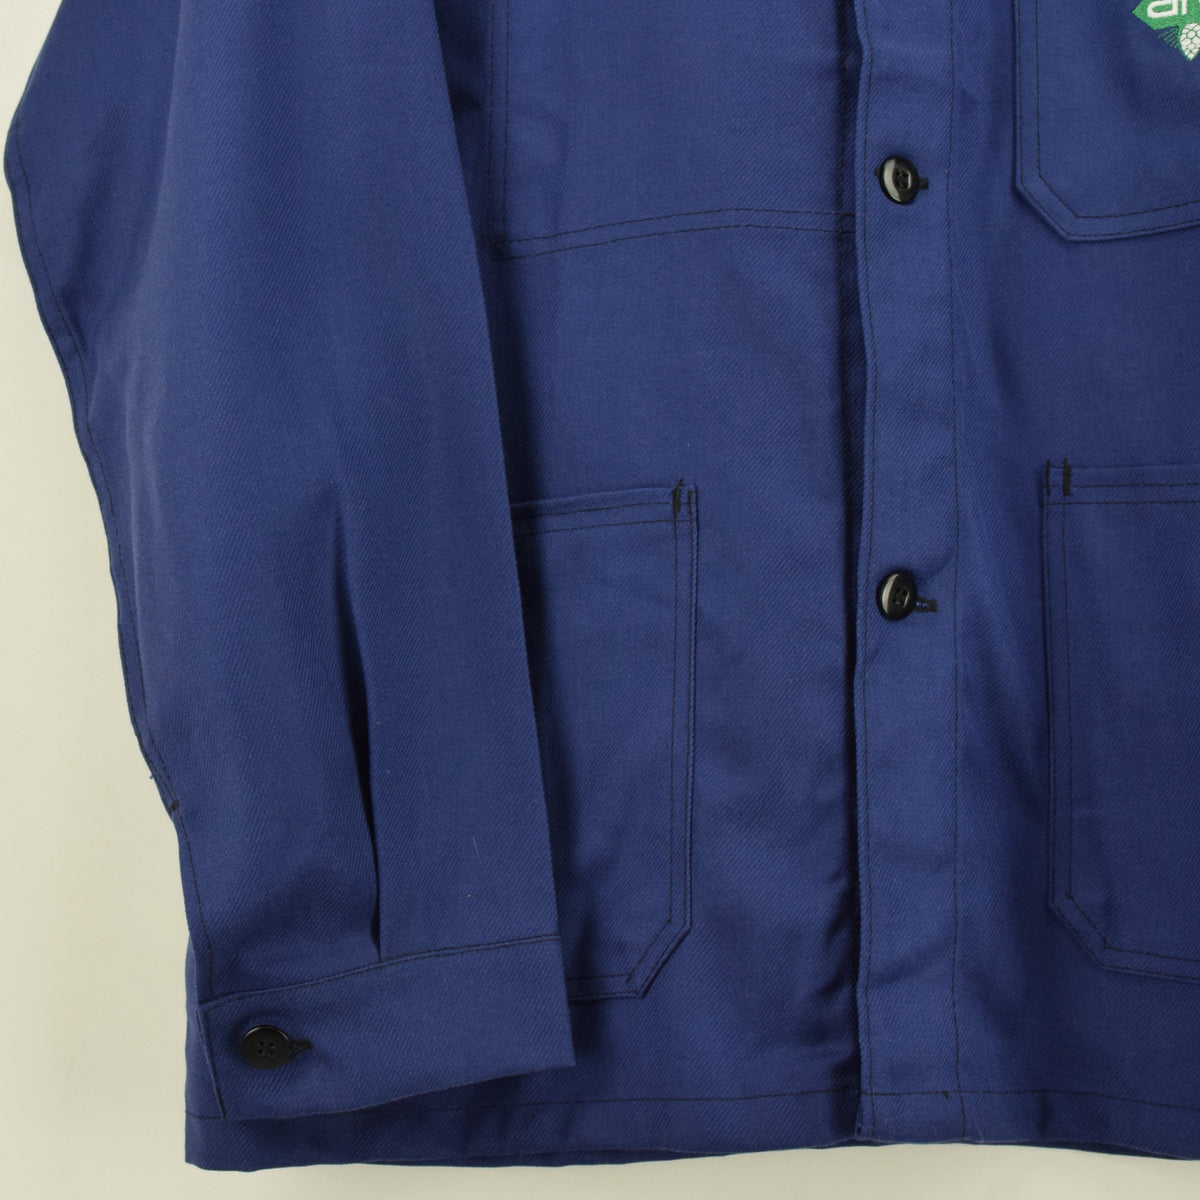 Vintage French Worker Indigo Blue Deadstock Sanforized Cotton Chore Jacket M front hem